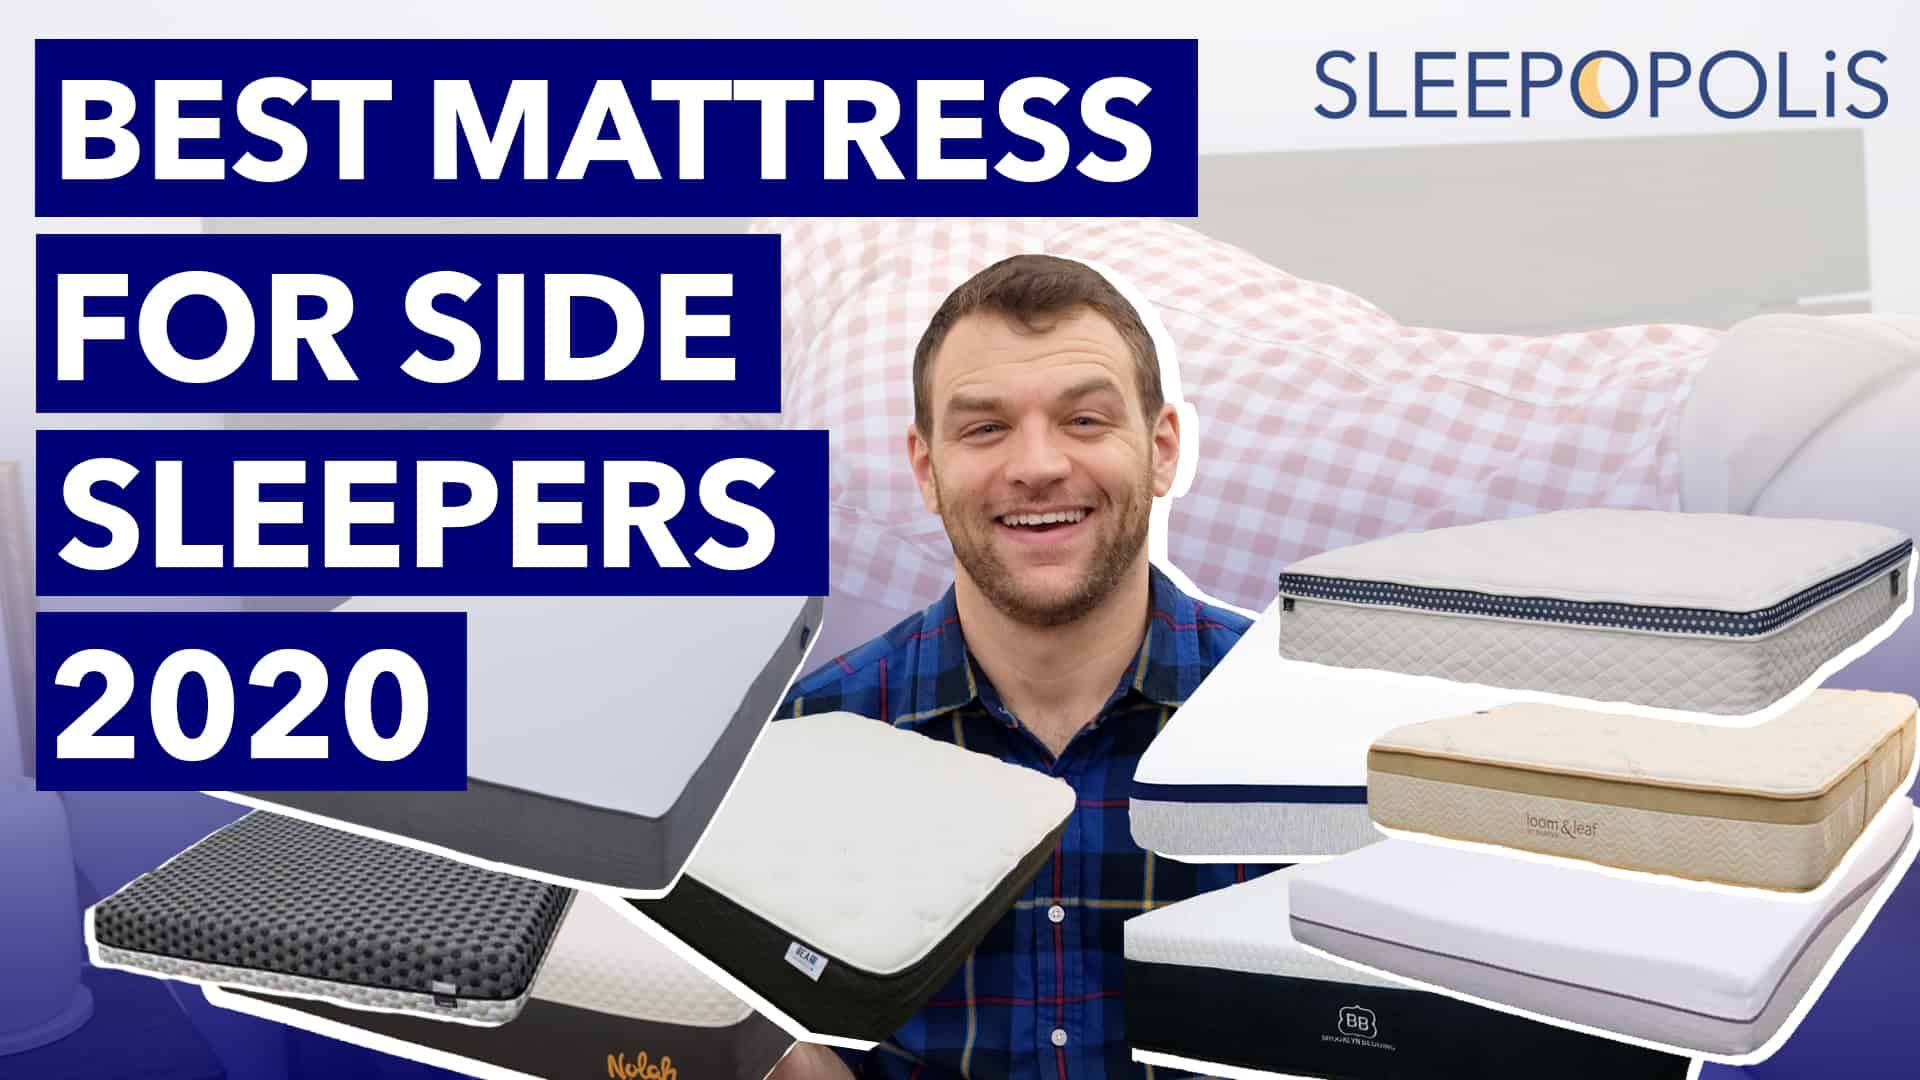 Looking for the best mattress for side sleepers? No matter